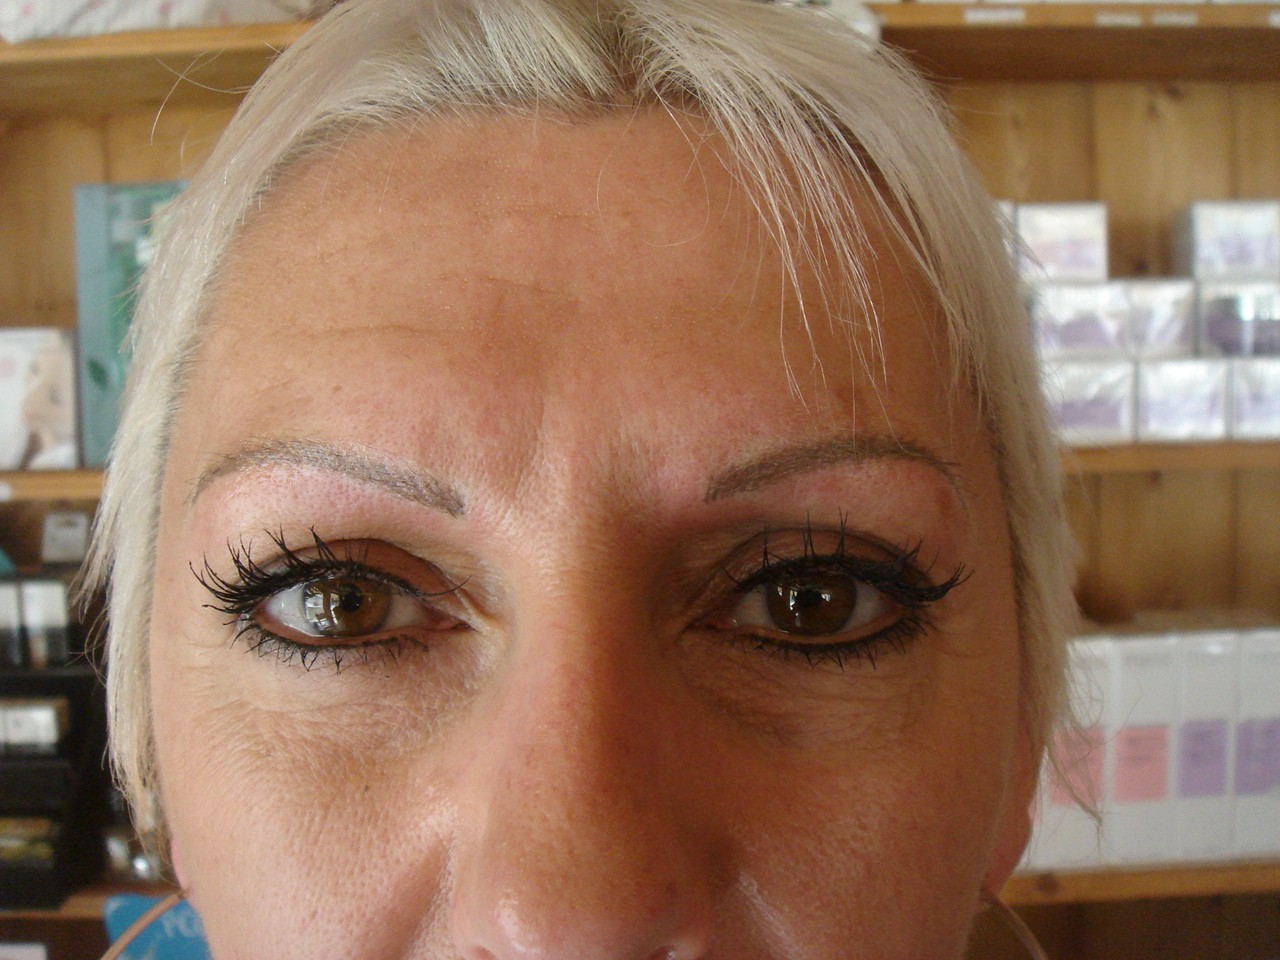 Maquillage Permanent des Sourcils en poil à poil  - tatouage sourcils permanent